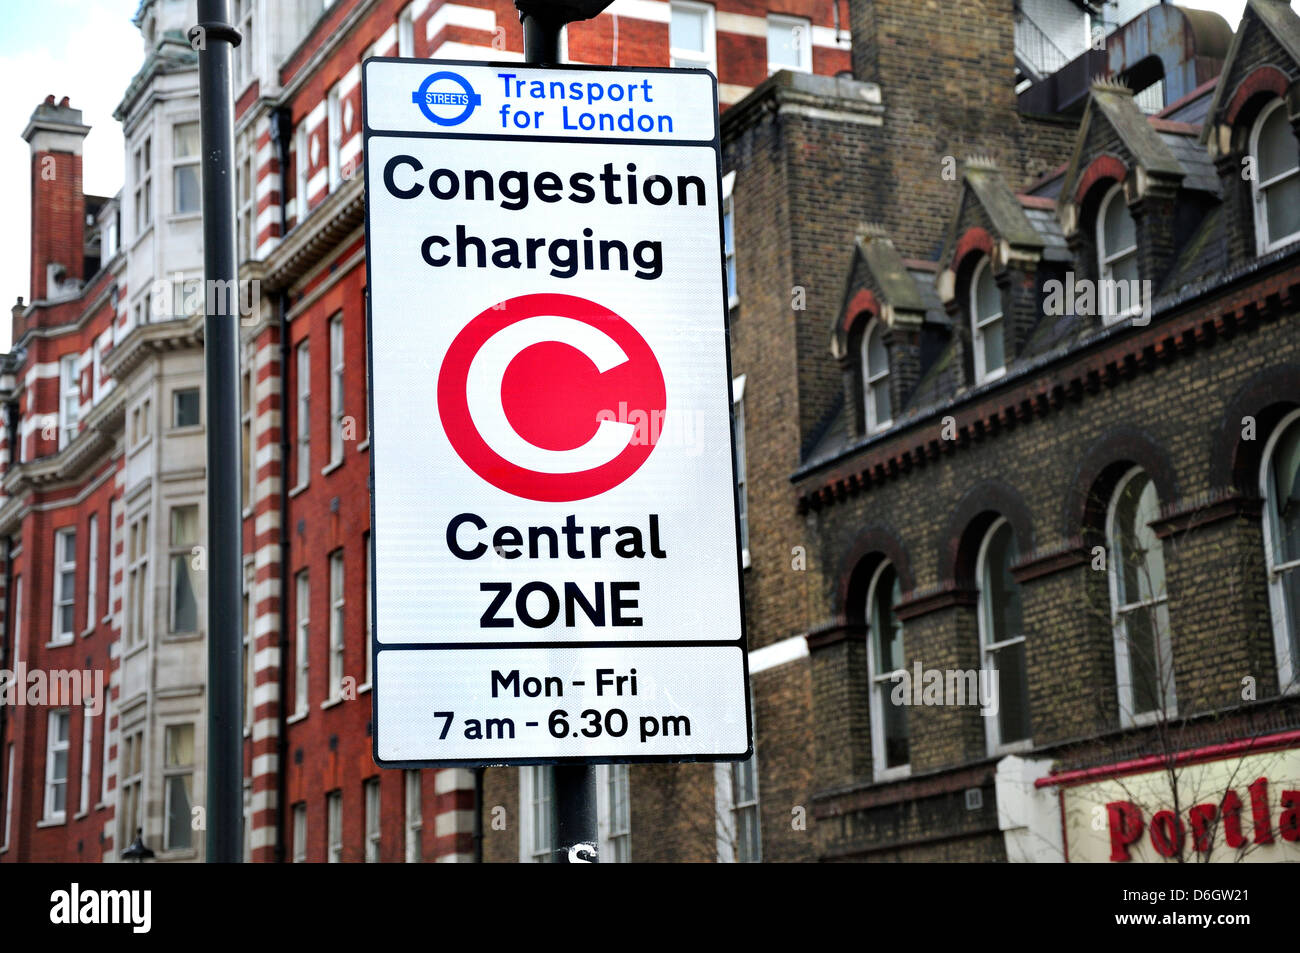 London, England, UK. Congestion charging sign in central zone - Stock Image